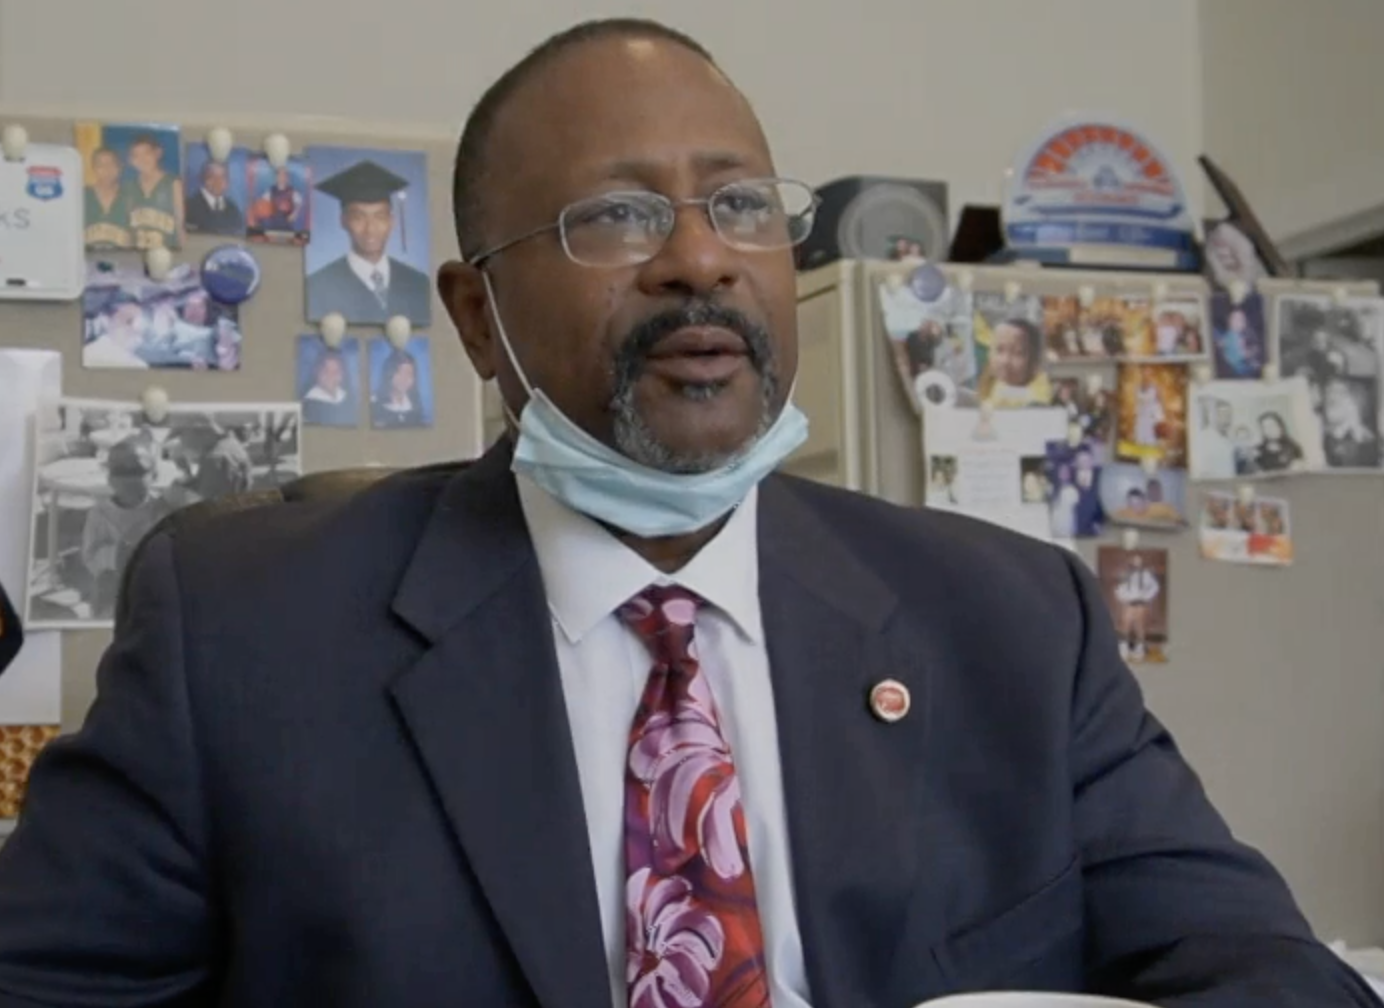 A photographic still image from the video of Elbert Taylor.